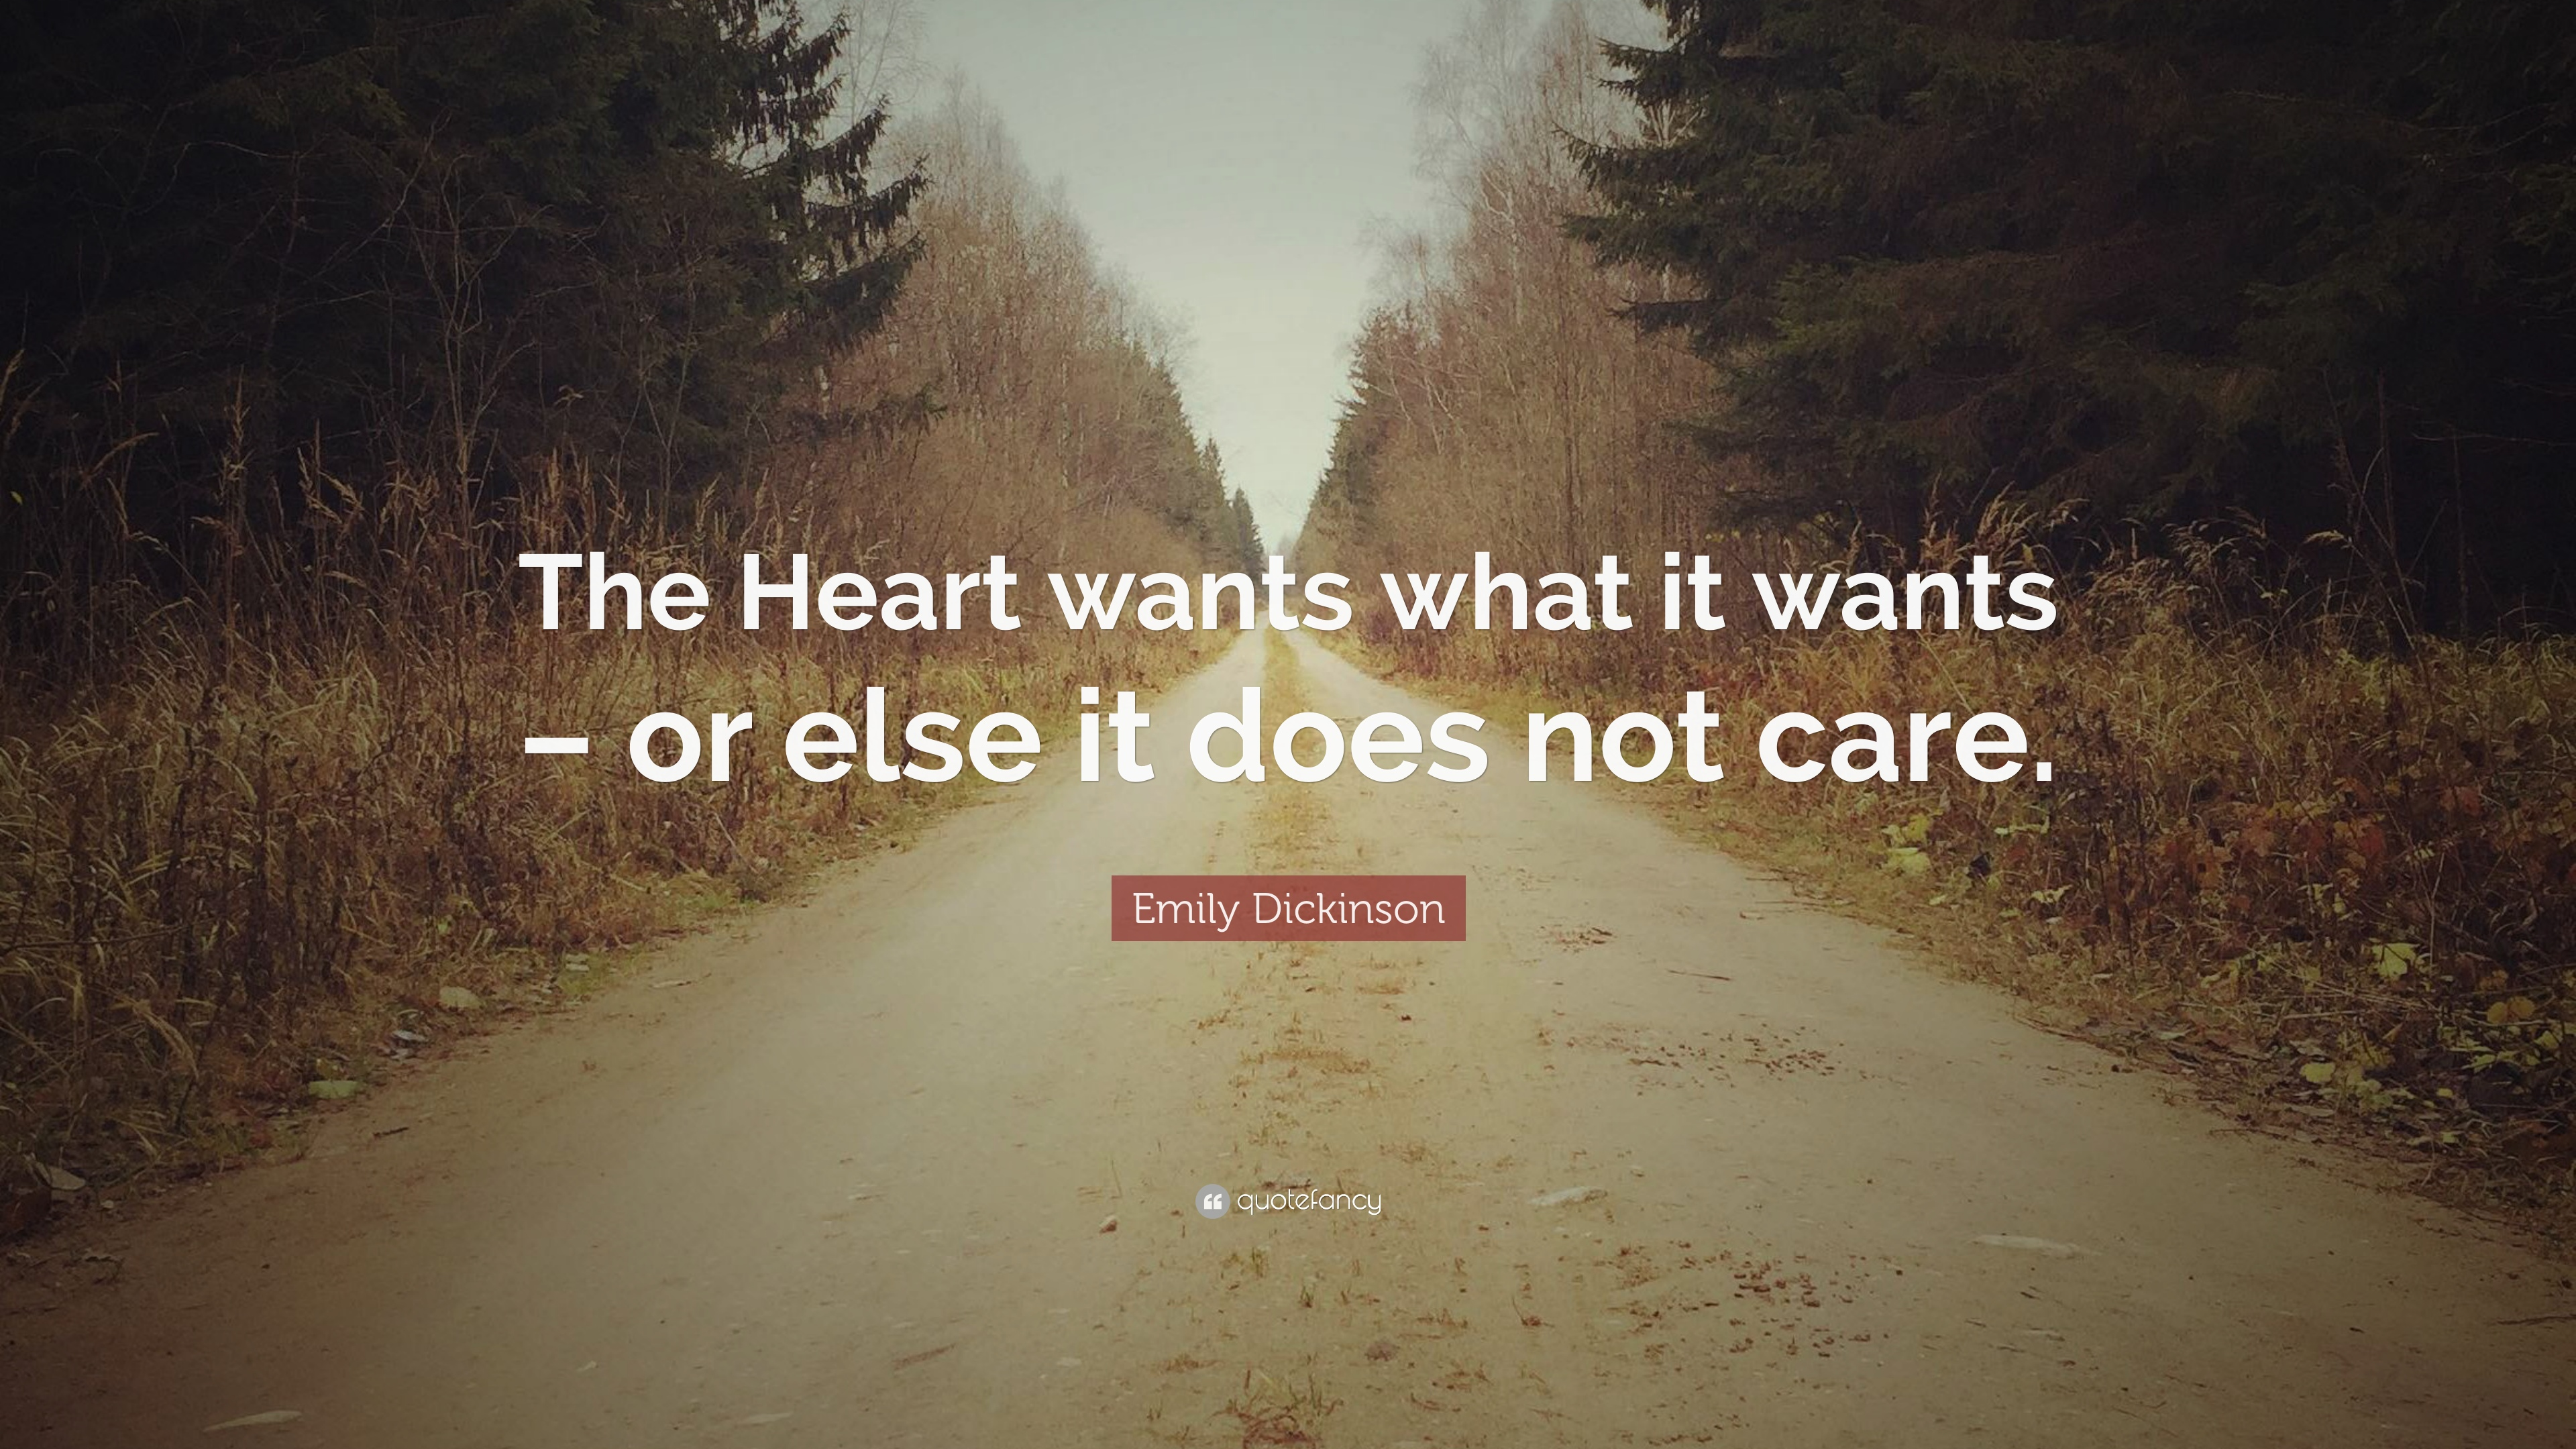 Emily Dickinson Quote The Heart Wants What It Wants Or Else It